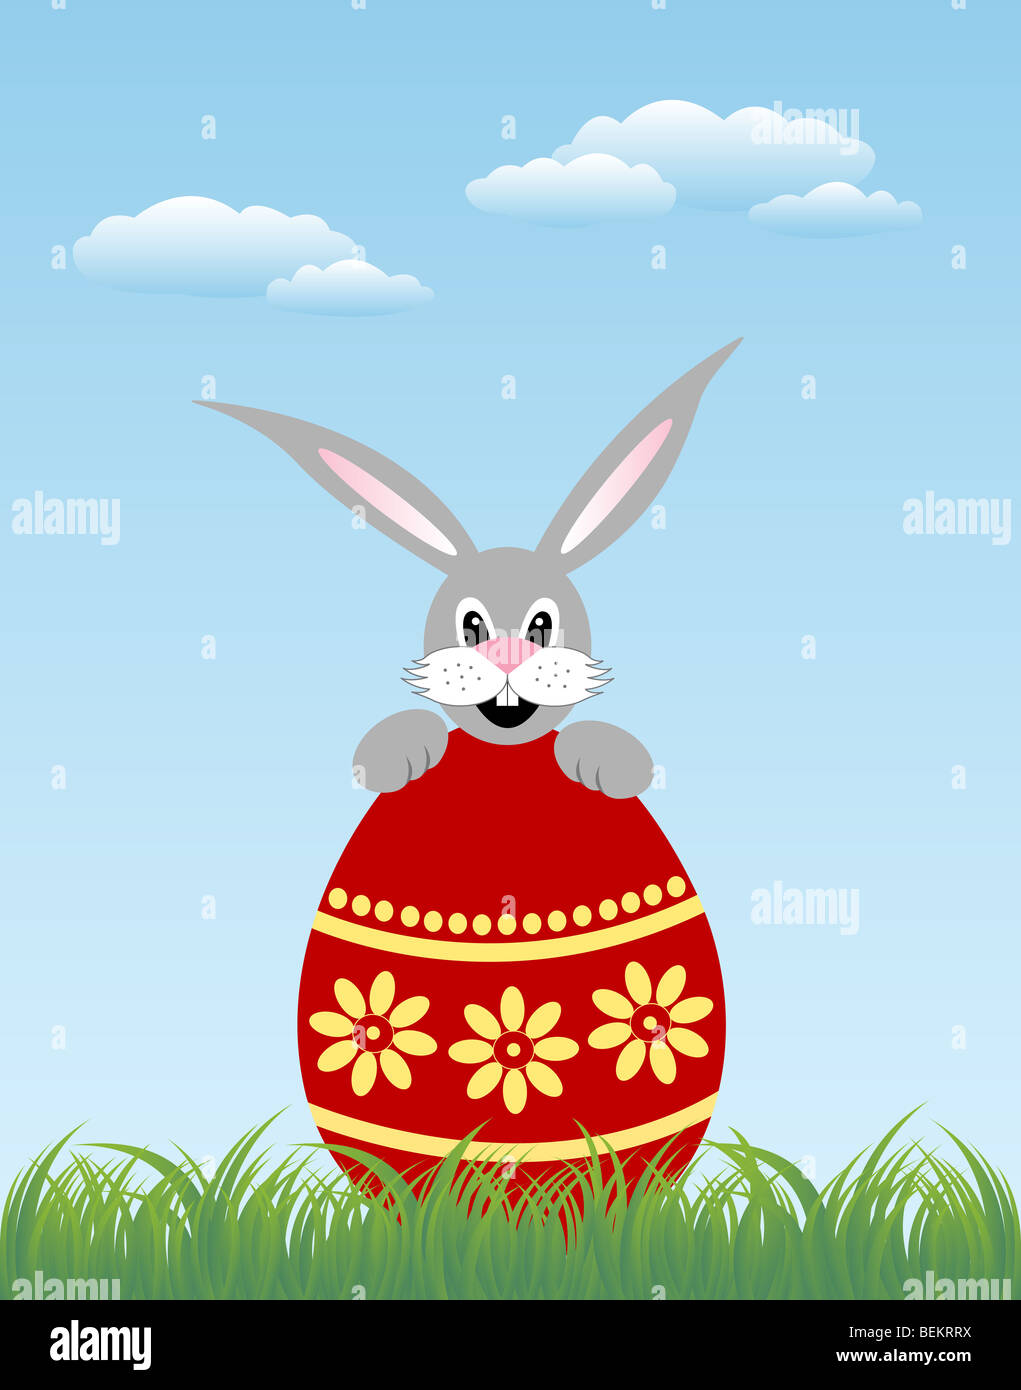 Easter Bunny - Stock Image